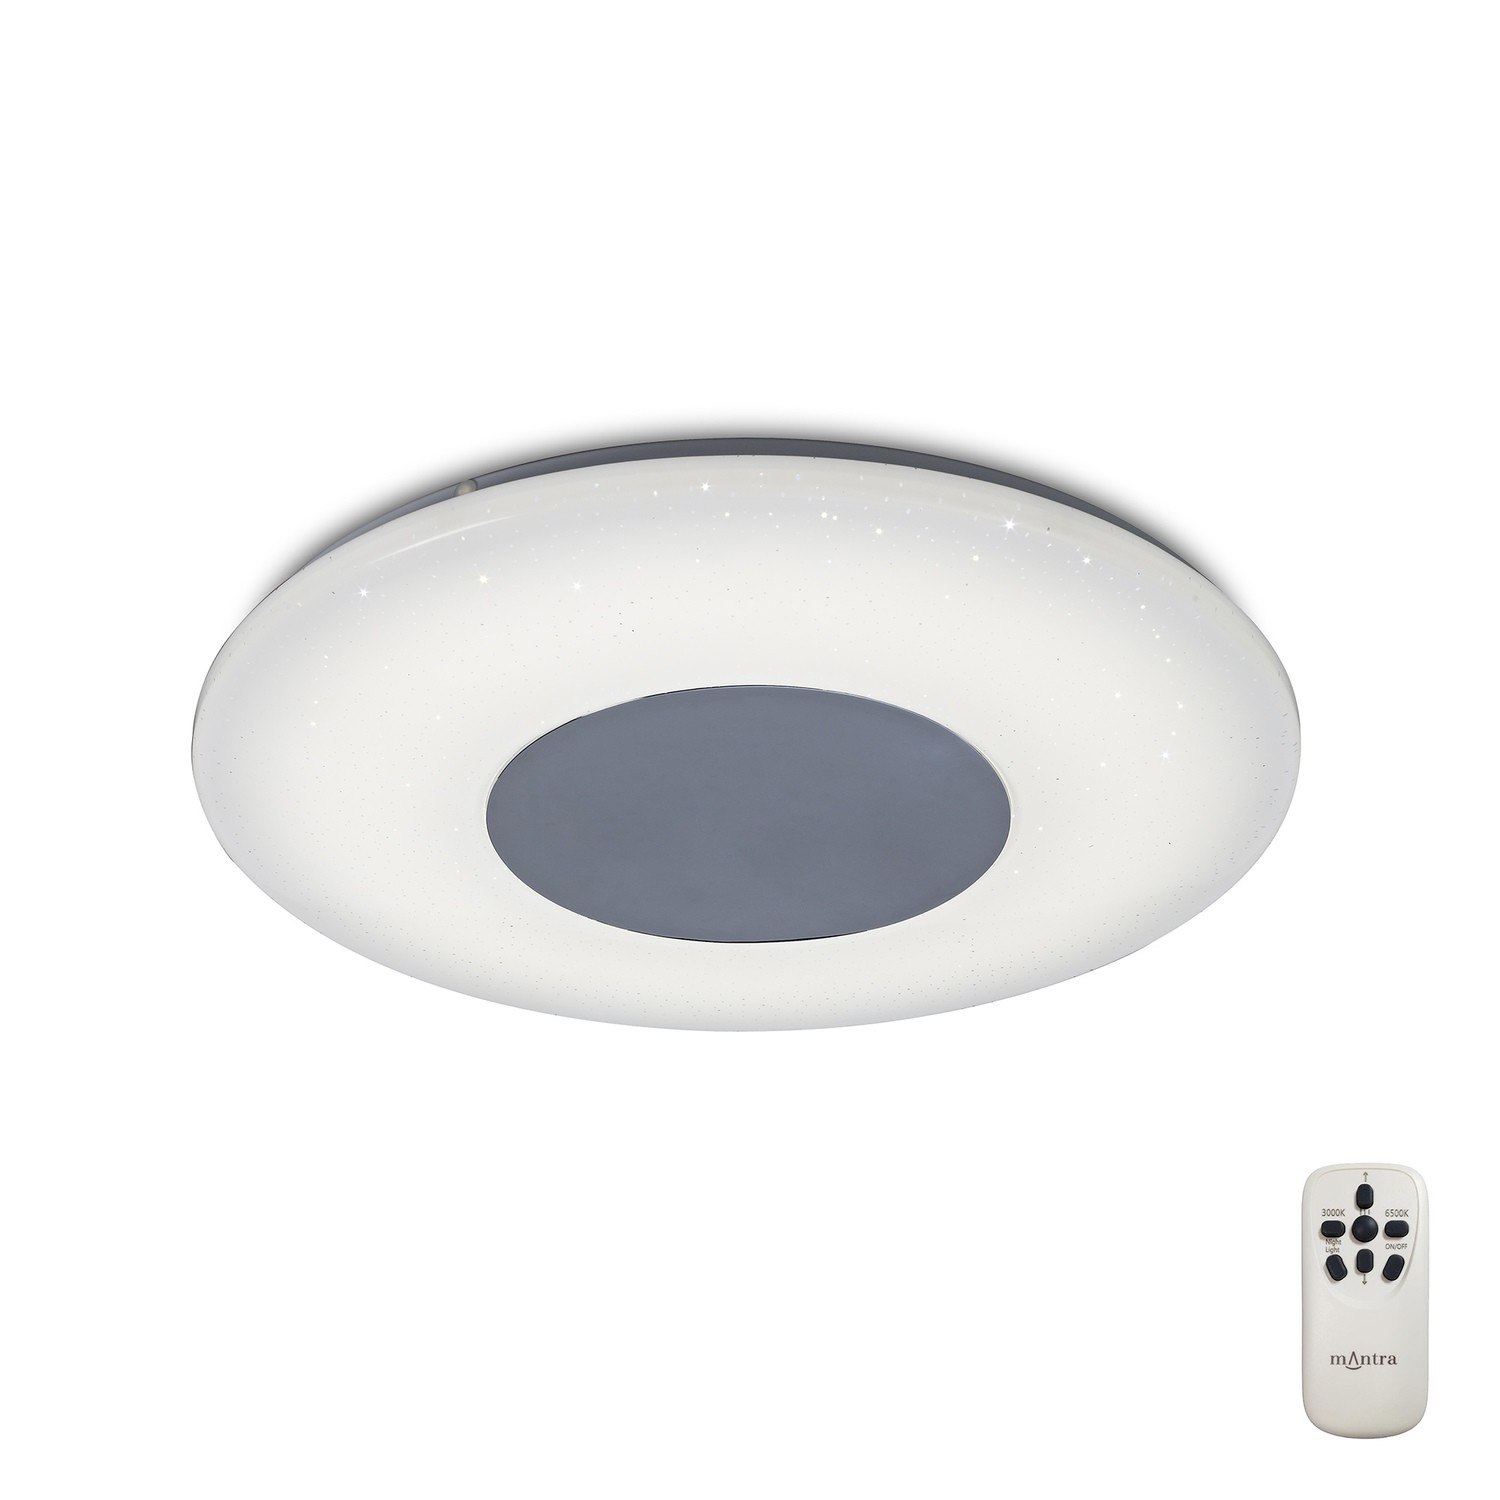 Reef Ceiling 45cm Round 48W LED 3000-6500K Tuneable, 3500lm, Remote Control Chrome/ White, 3yrs Warranty